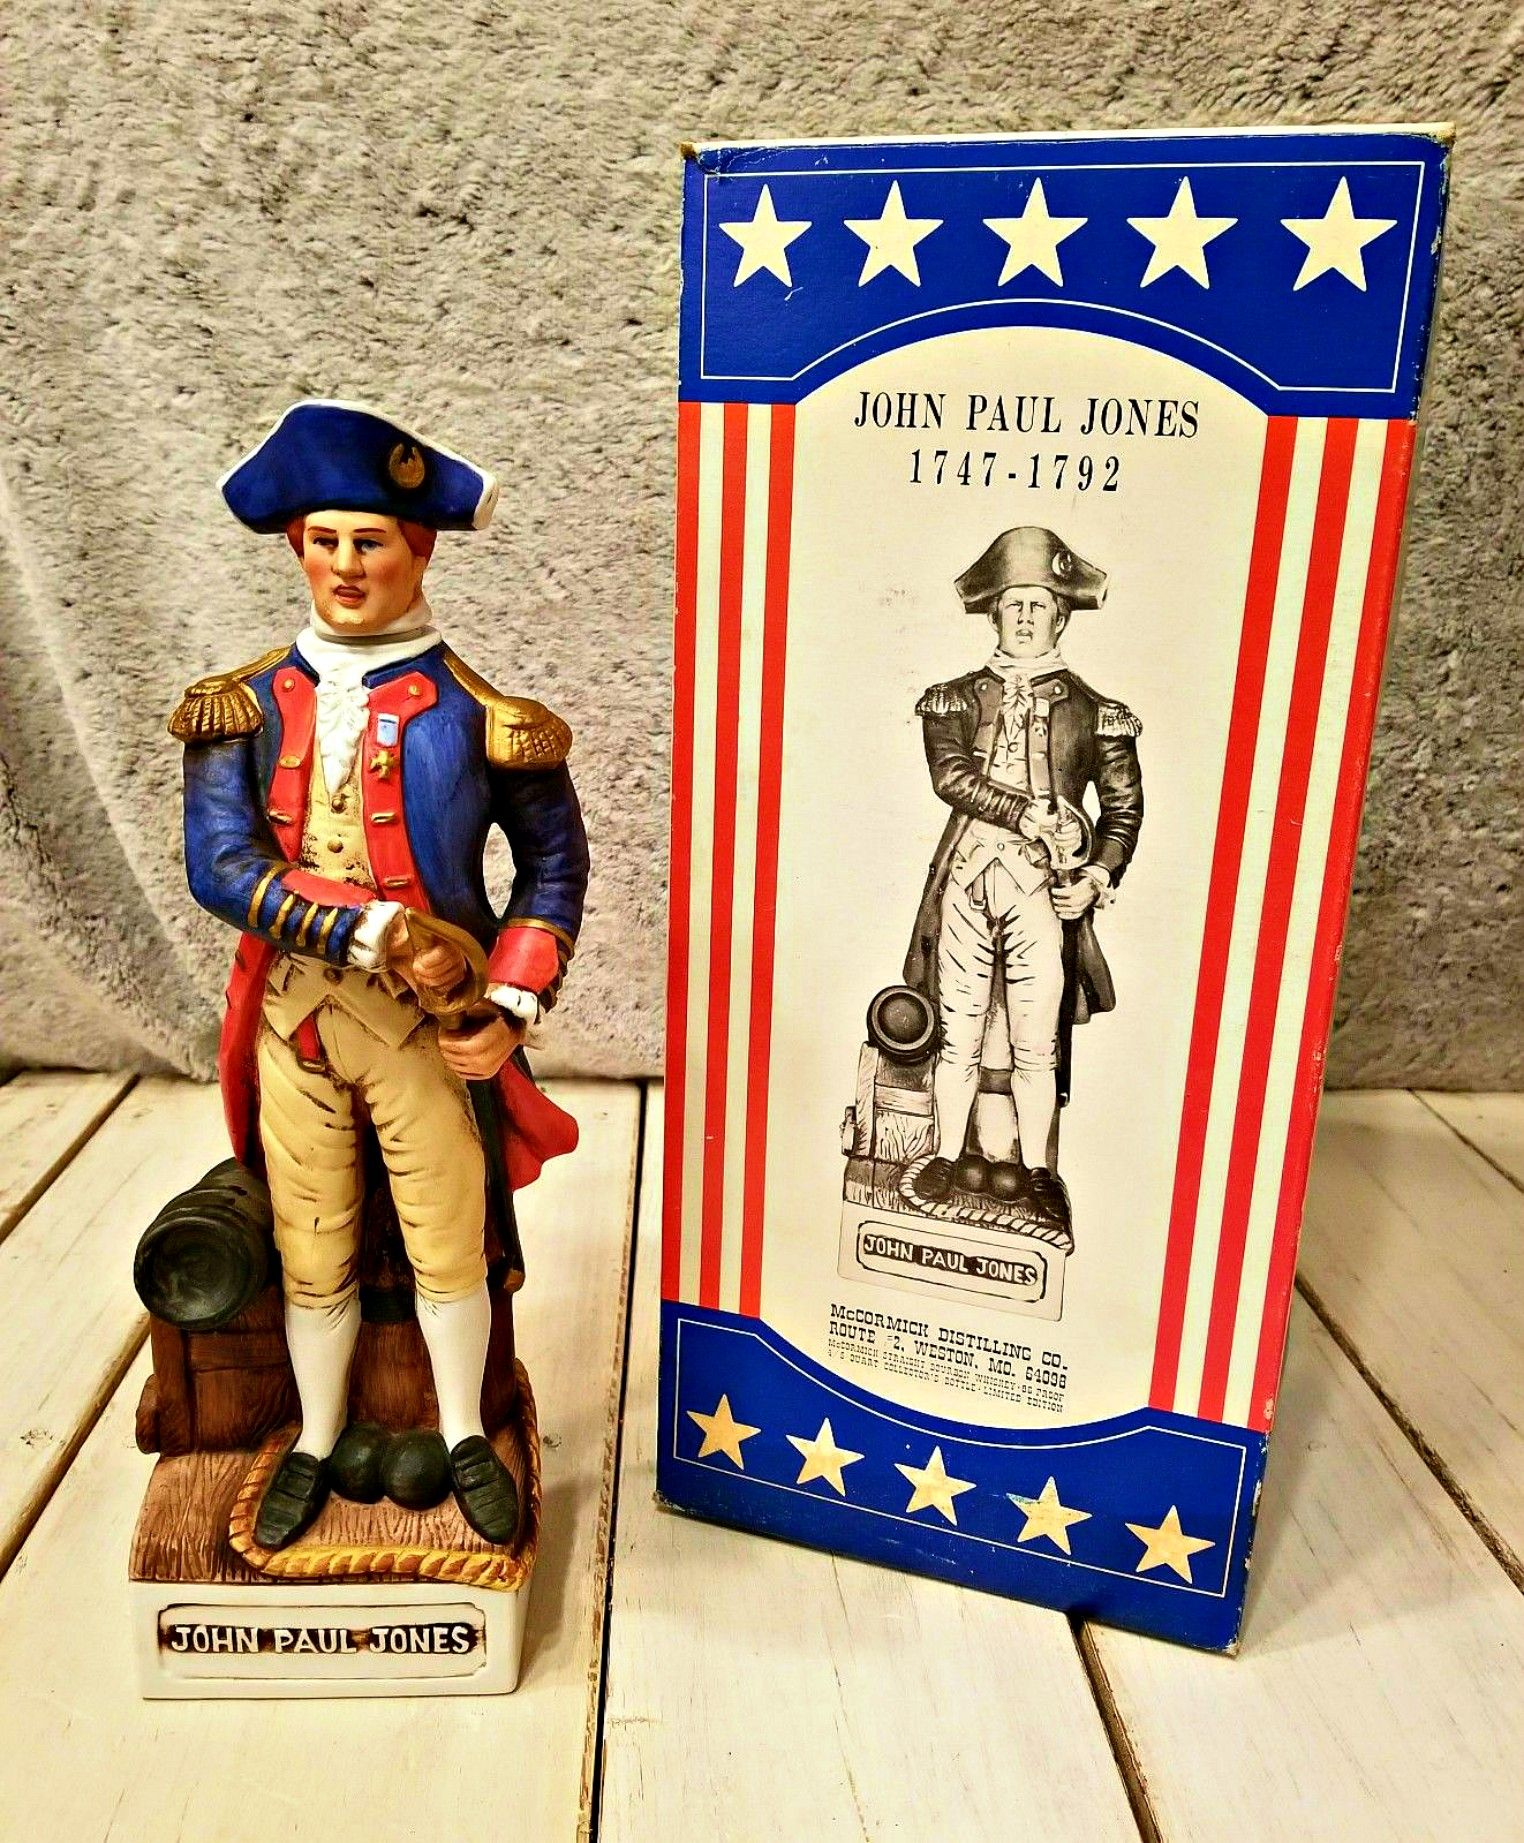 The History Of The Bicentennial Vintage Patriots Series Decanters By Mccormick American Well American Revolutionary War Military Service